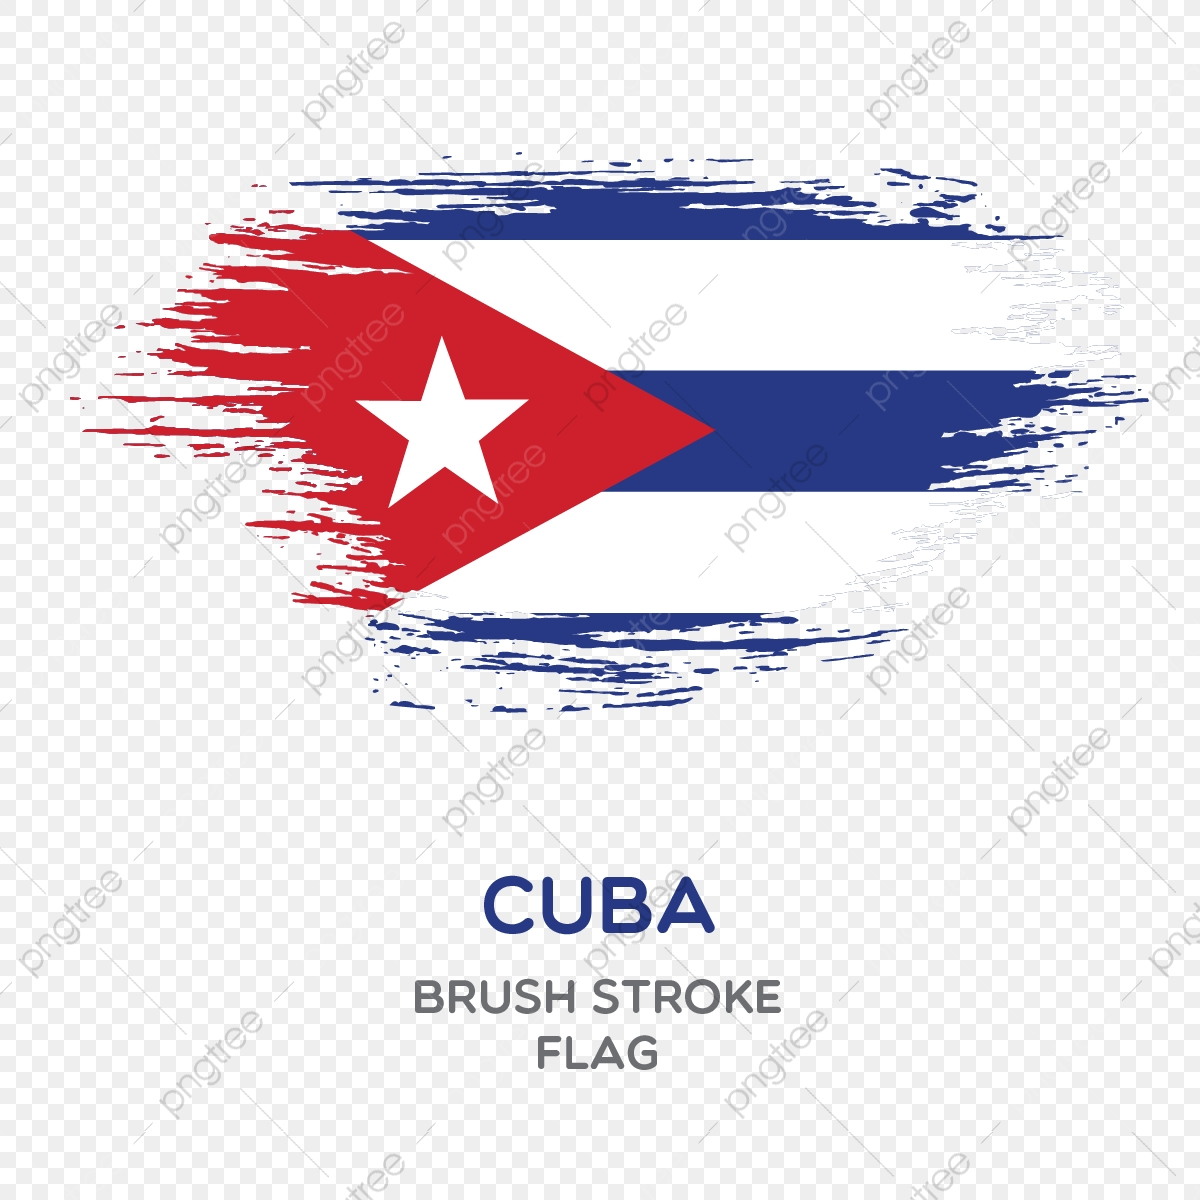 Flag Of Cuba Picture, Cuba, Flag, Foreign Flag PNG and Vector with.